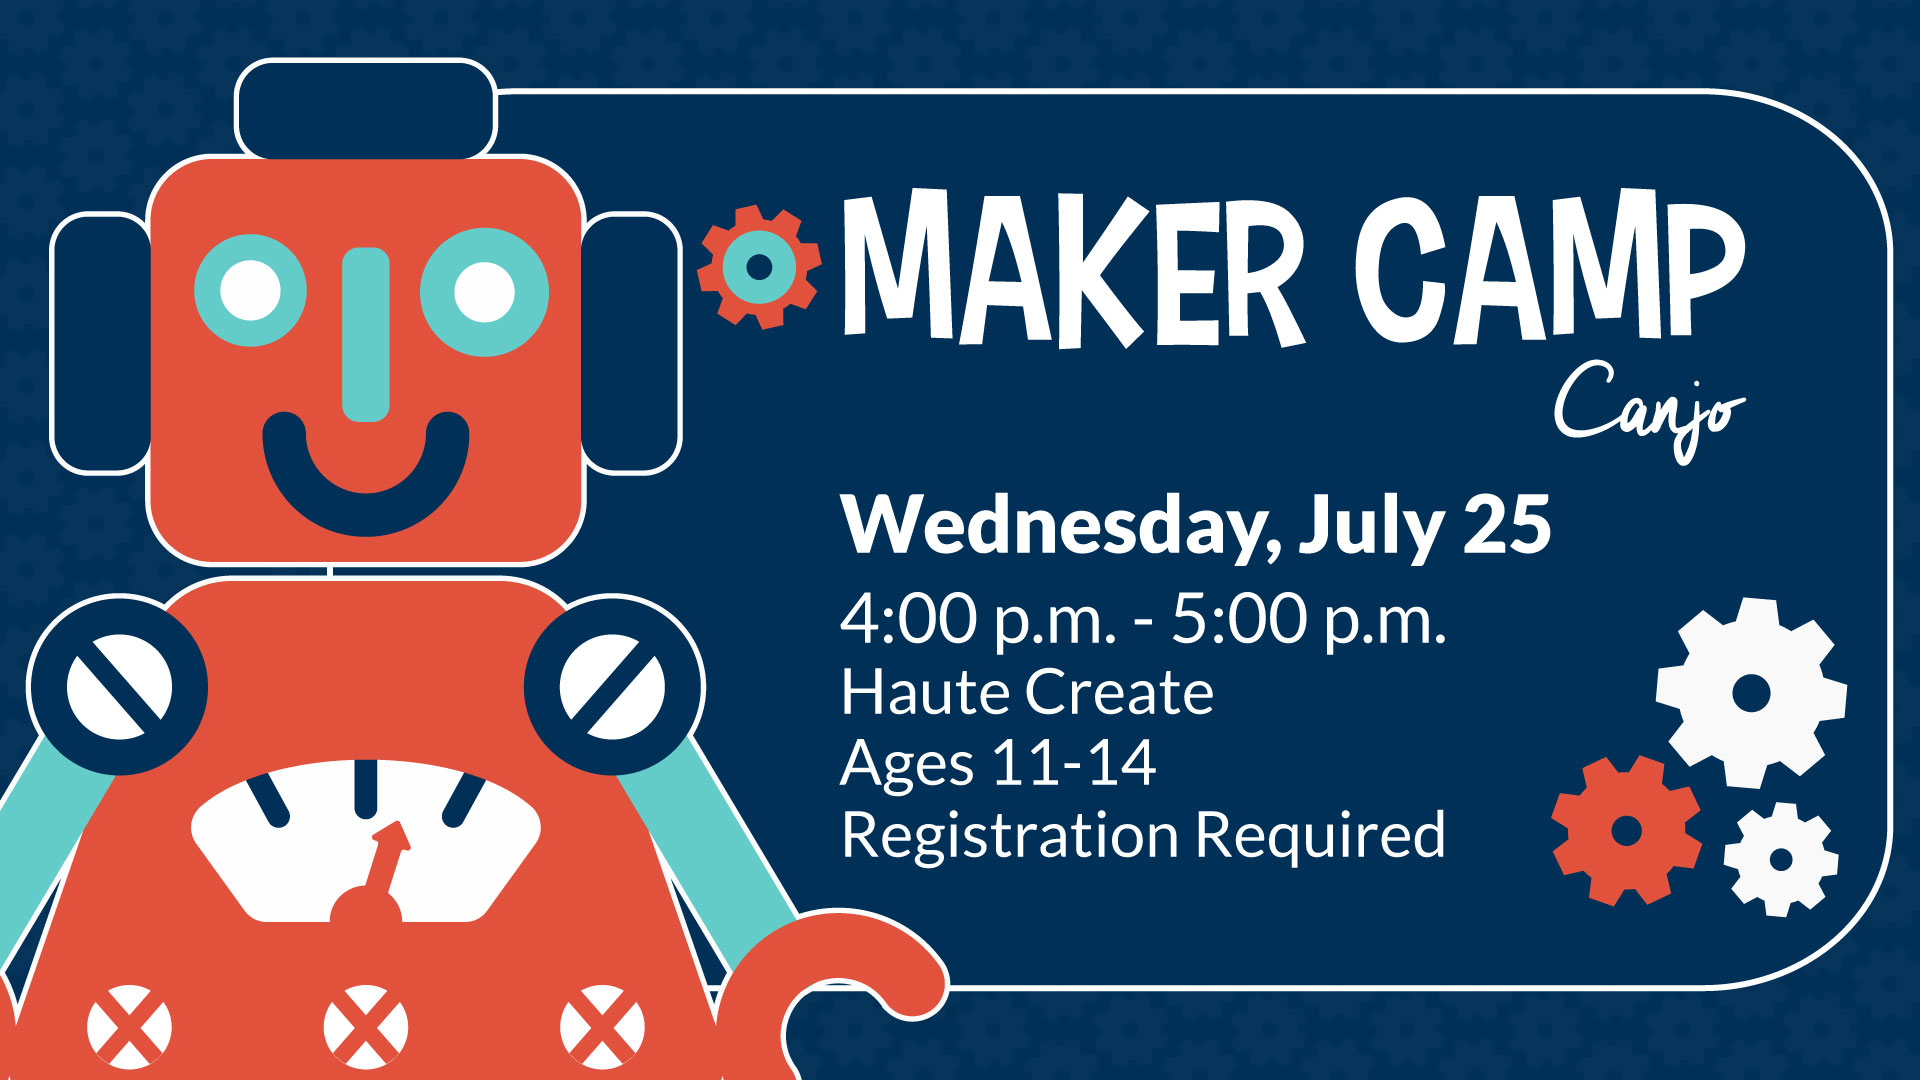 Illustration of Red Toy Robot with Maker Camp Information